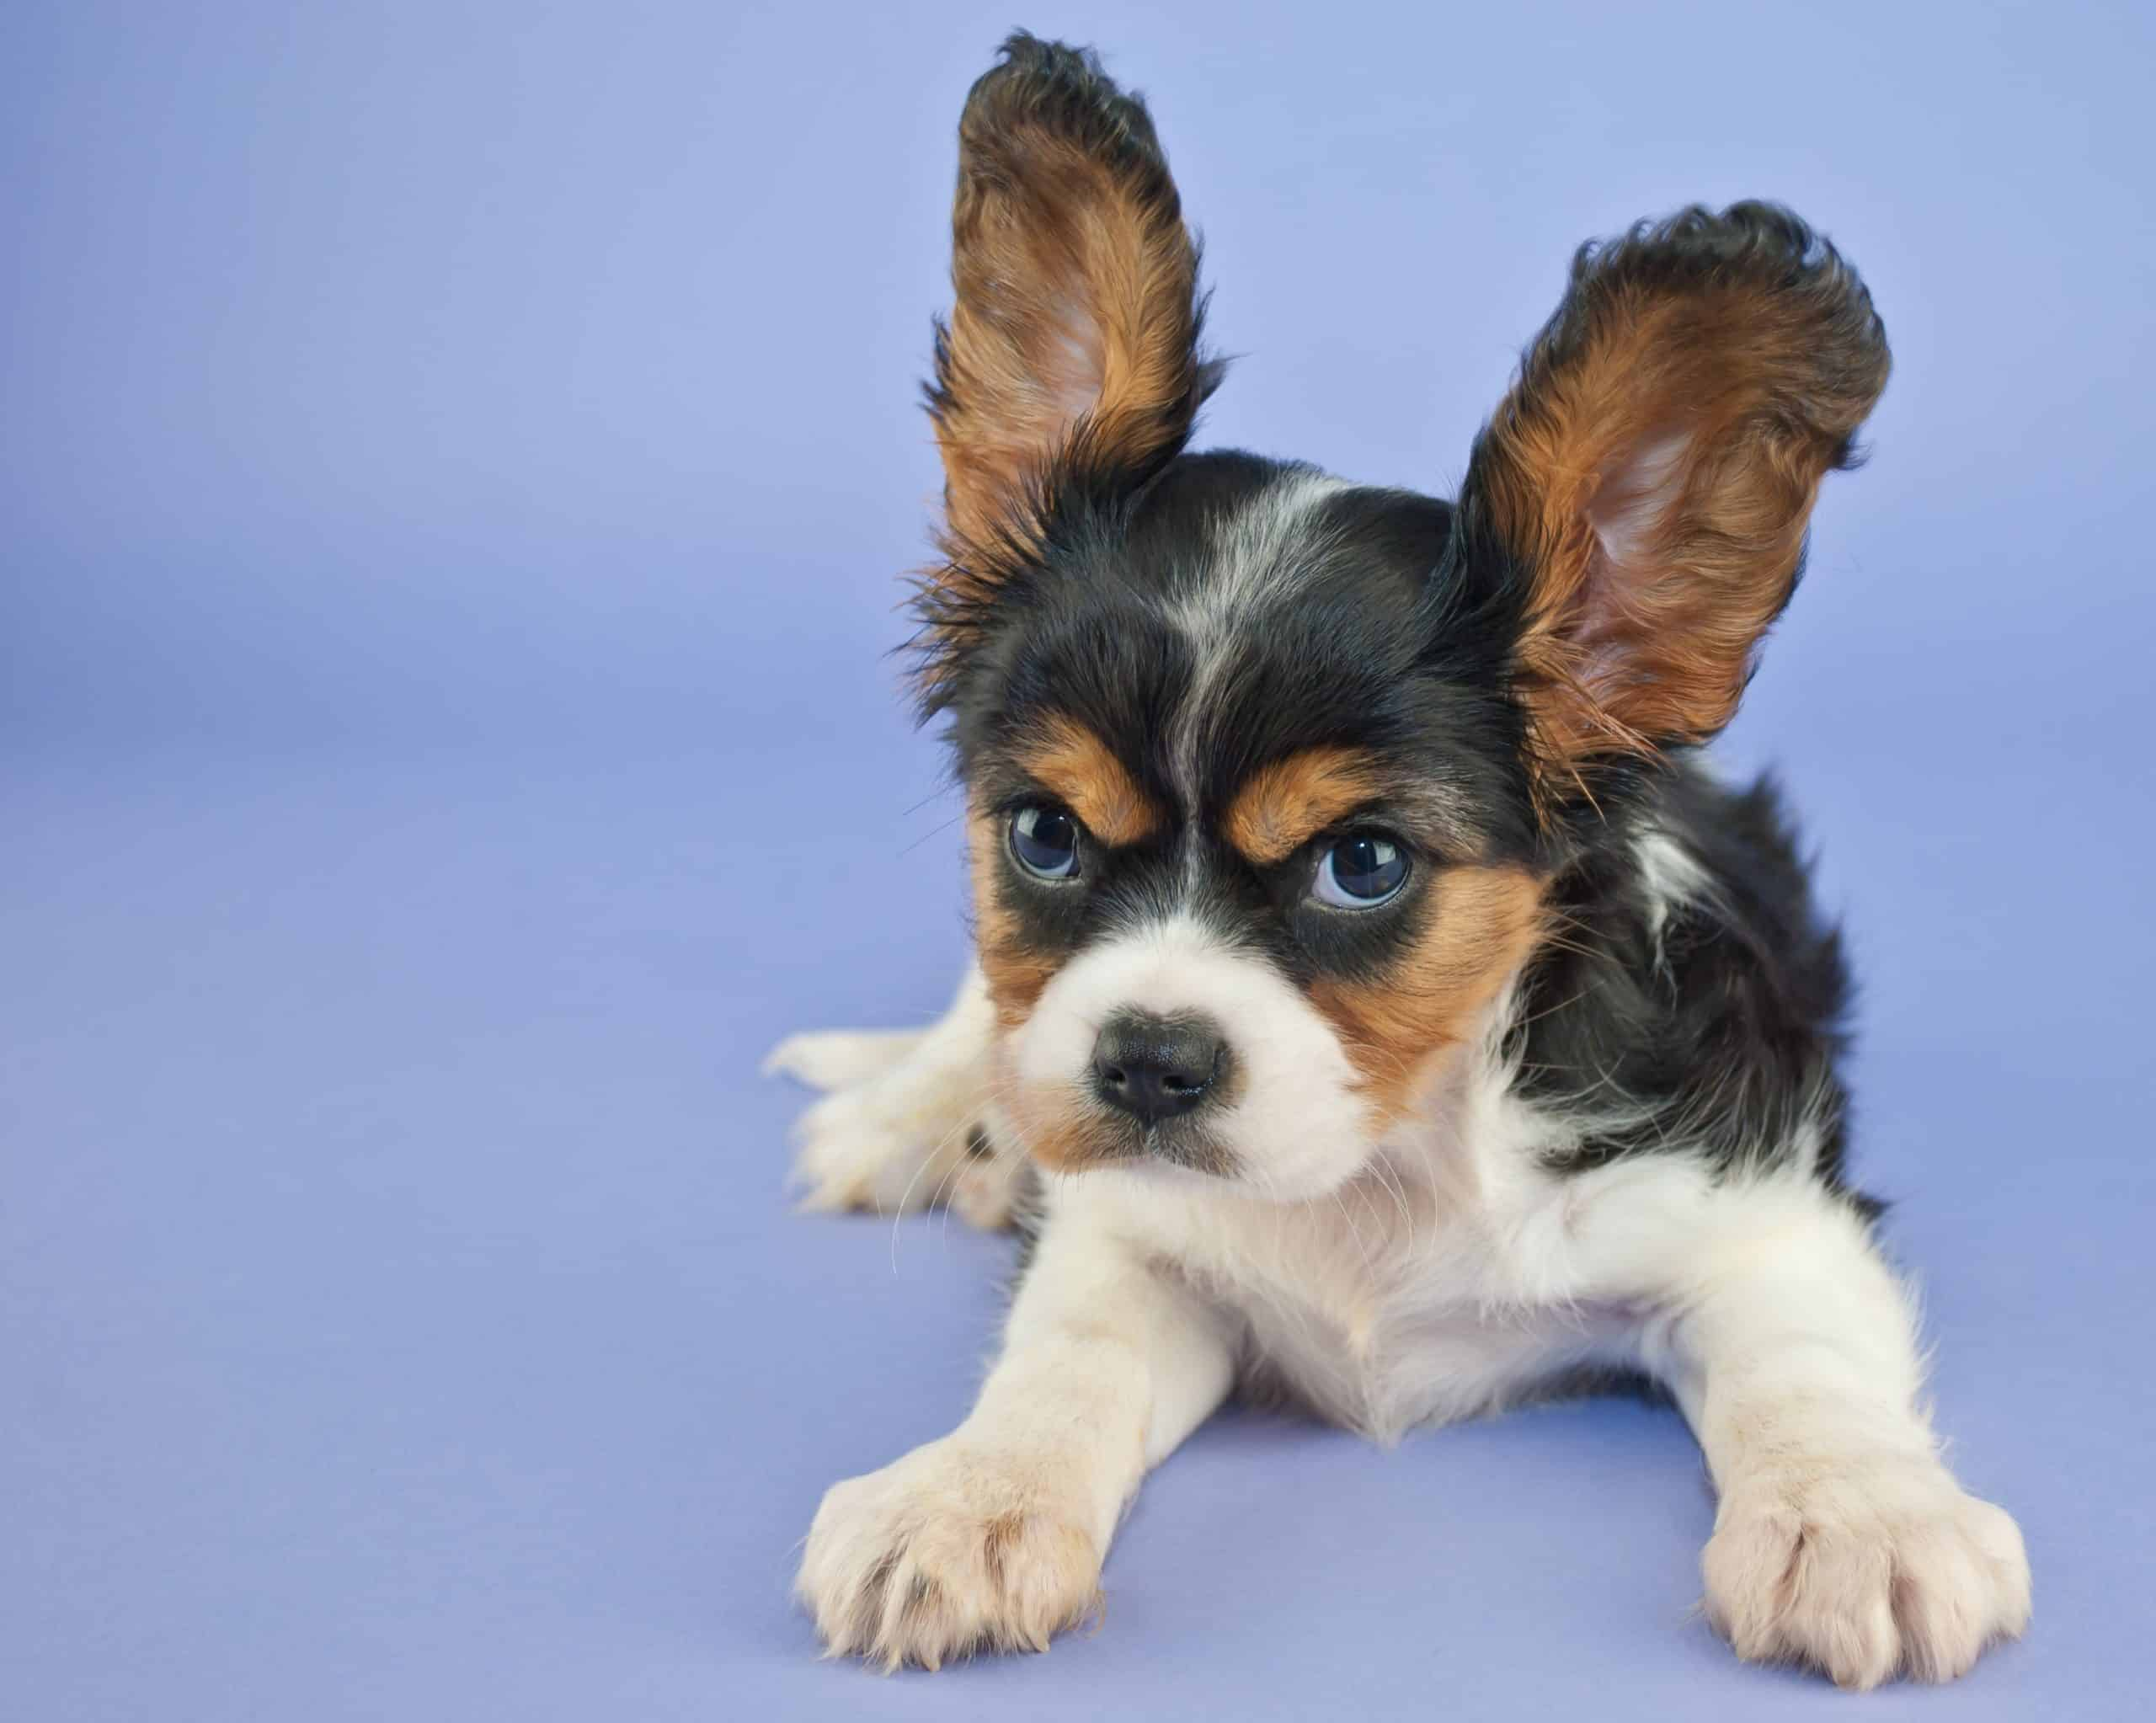 Photo illustration of an aggressive puppy. The most common aggressive puppy warning warning signs to watch for in your puppy's behaviors include snarling, growling, mounting, snapping, nipping, lip curling, lunging, dominance, challenging stance, dead-eye stare, aggressive barking, possessiveness, and of course, biting!